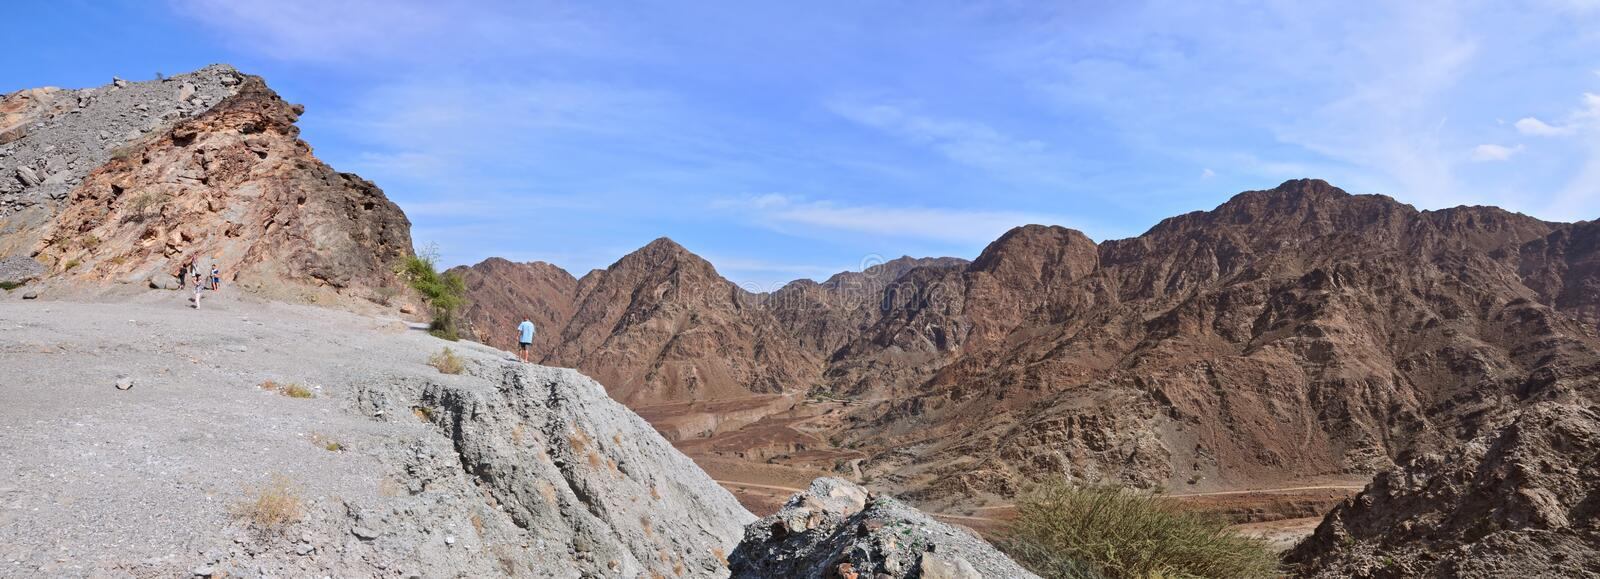 Panorama Hajjar mountain. emirate fujairah. United arab emirates royalty free stock photos